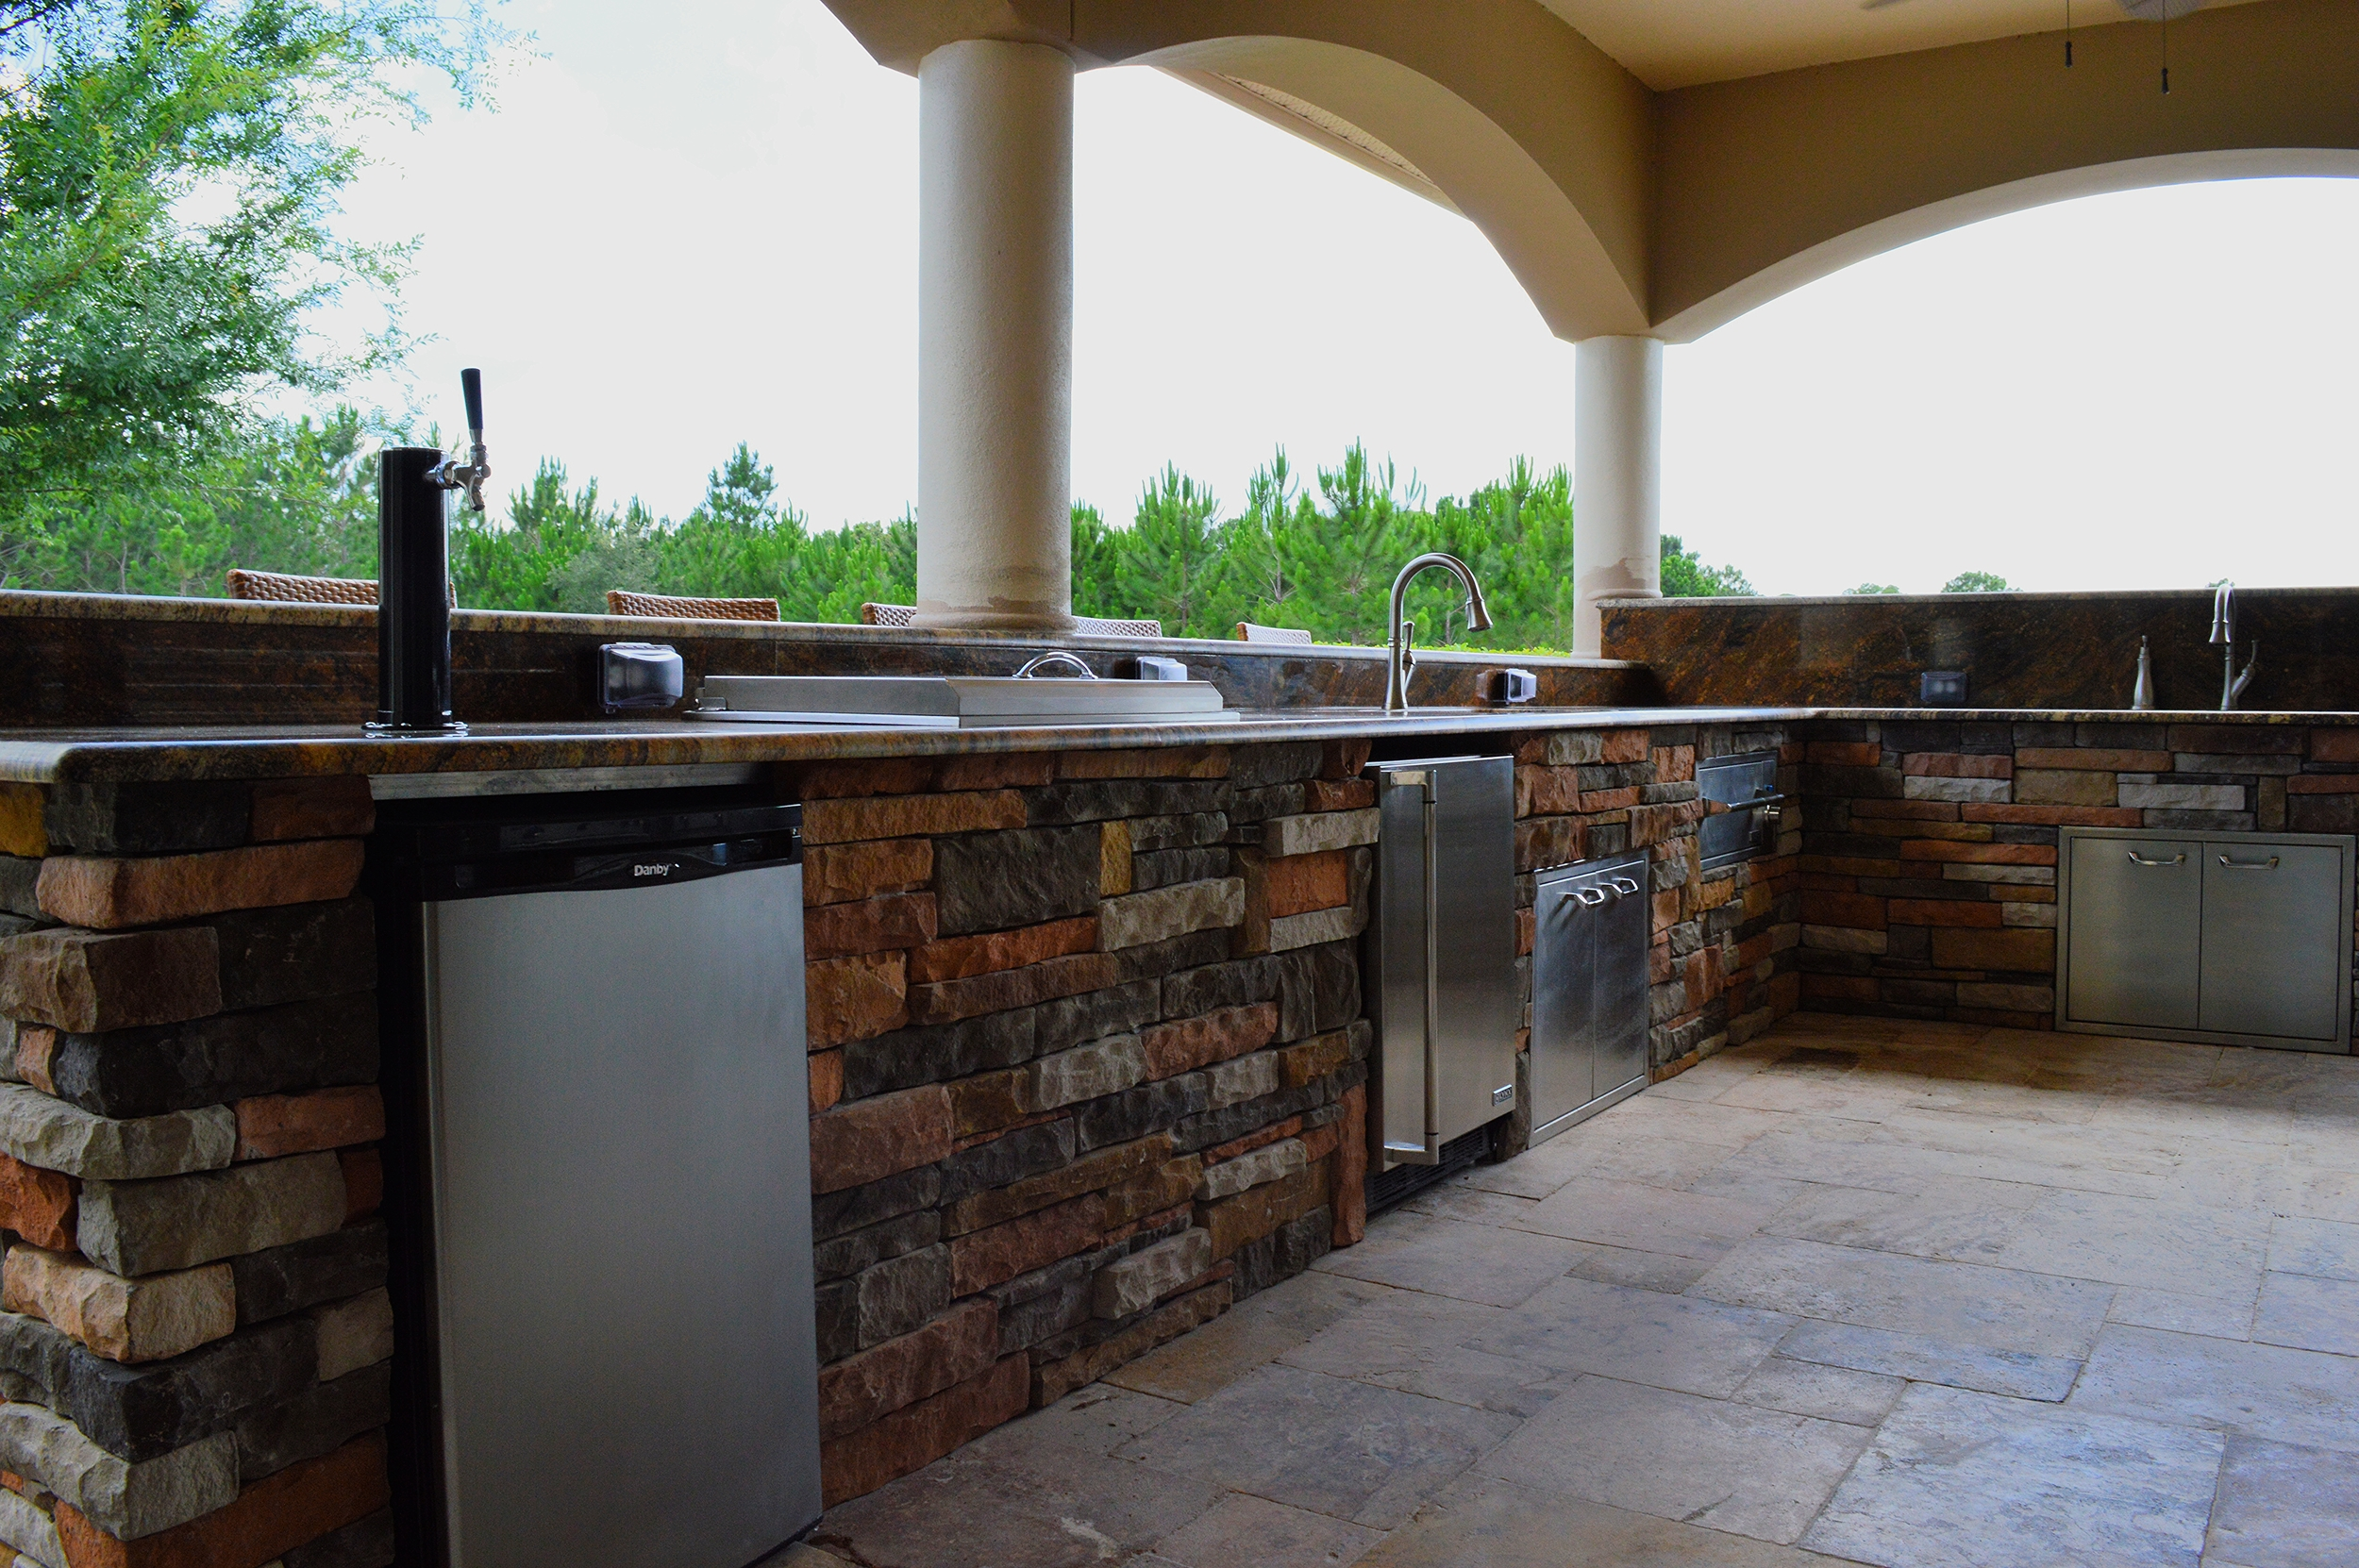 Outdoor Kitchen in Tampa Stainless Steal Appliances